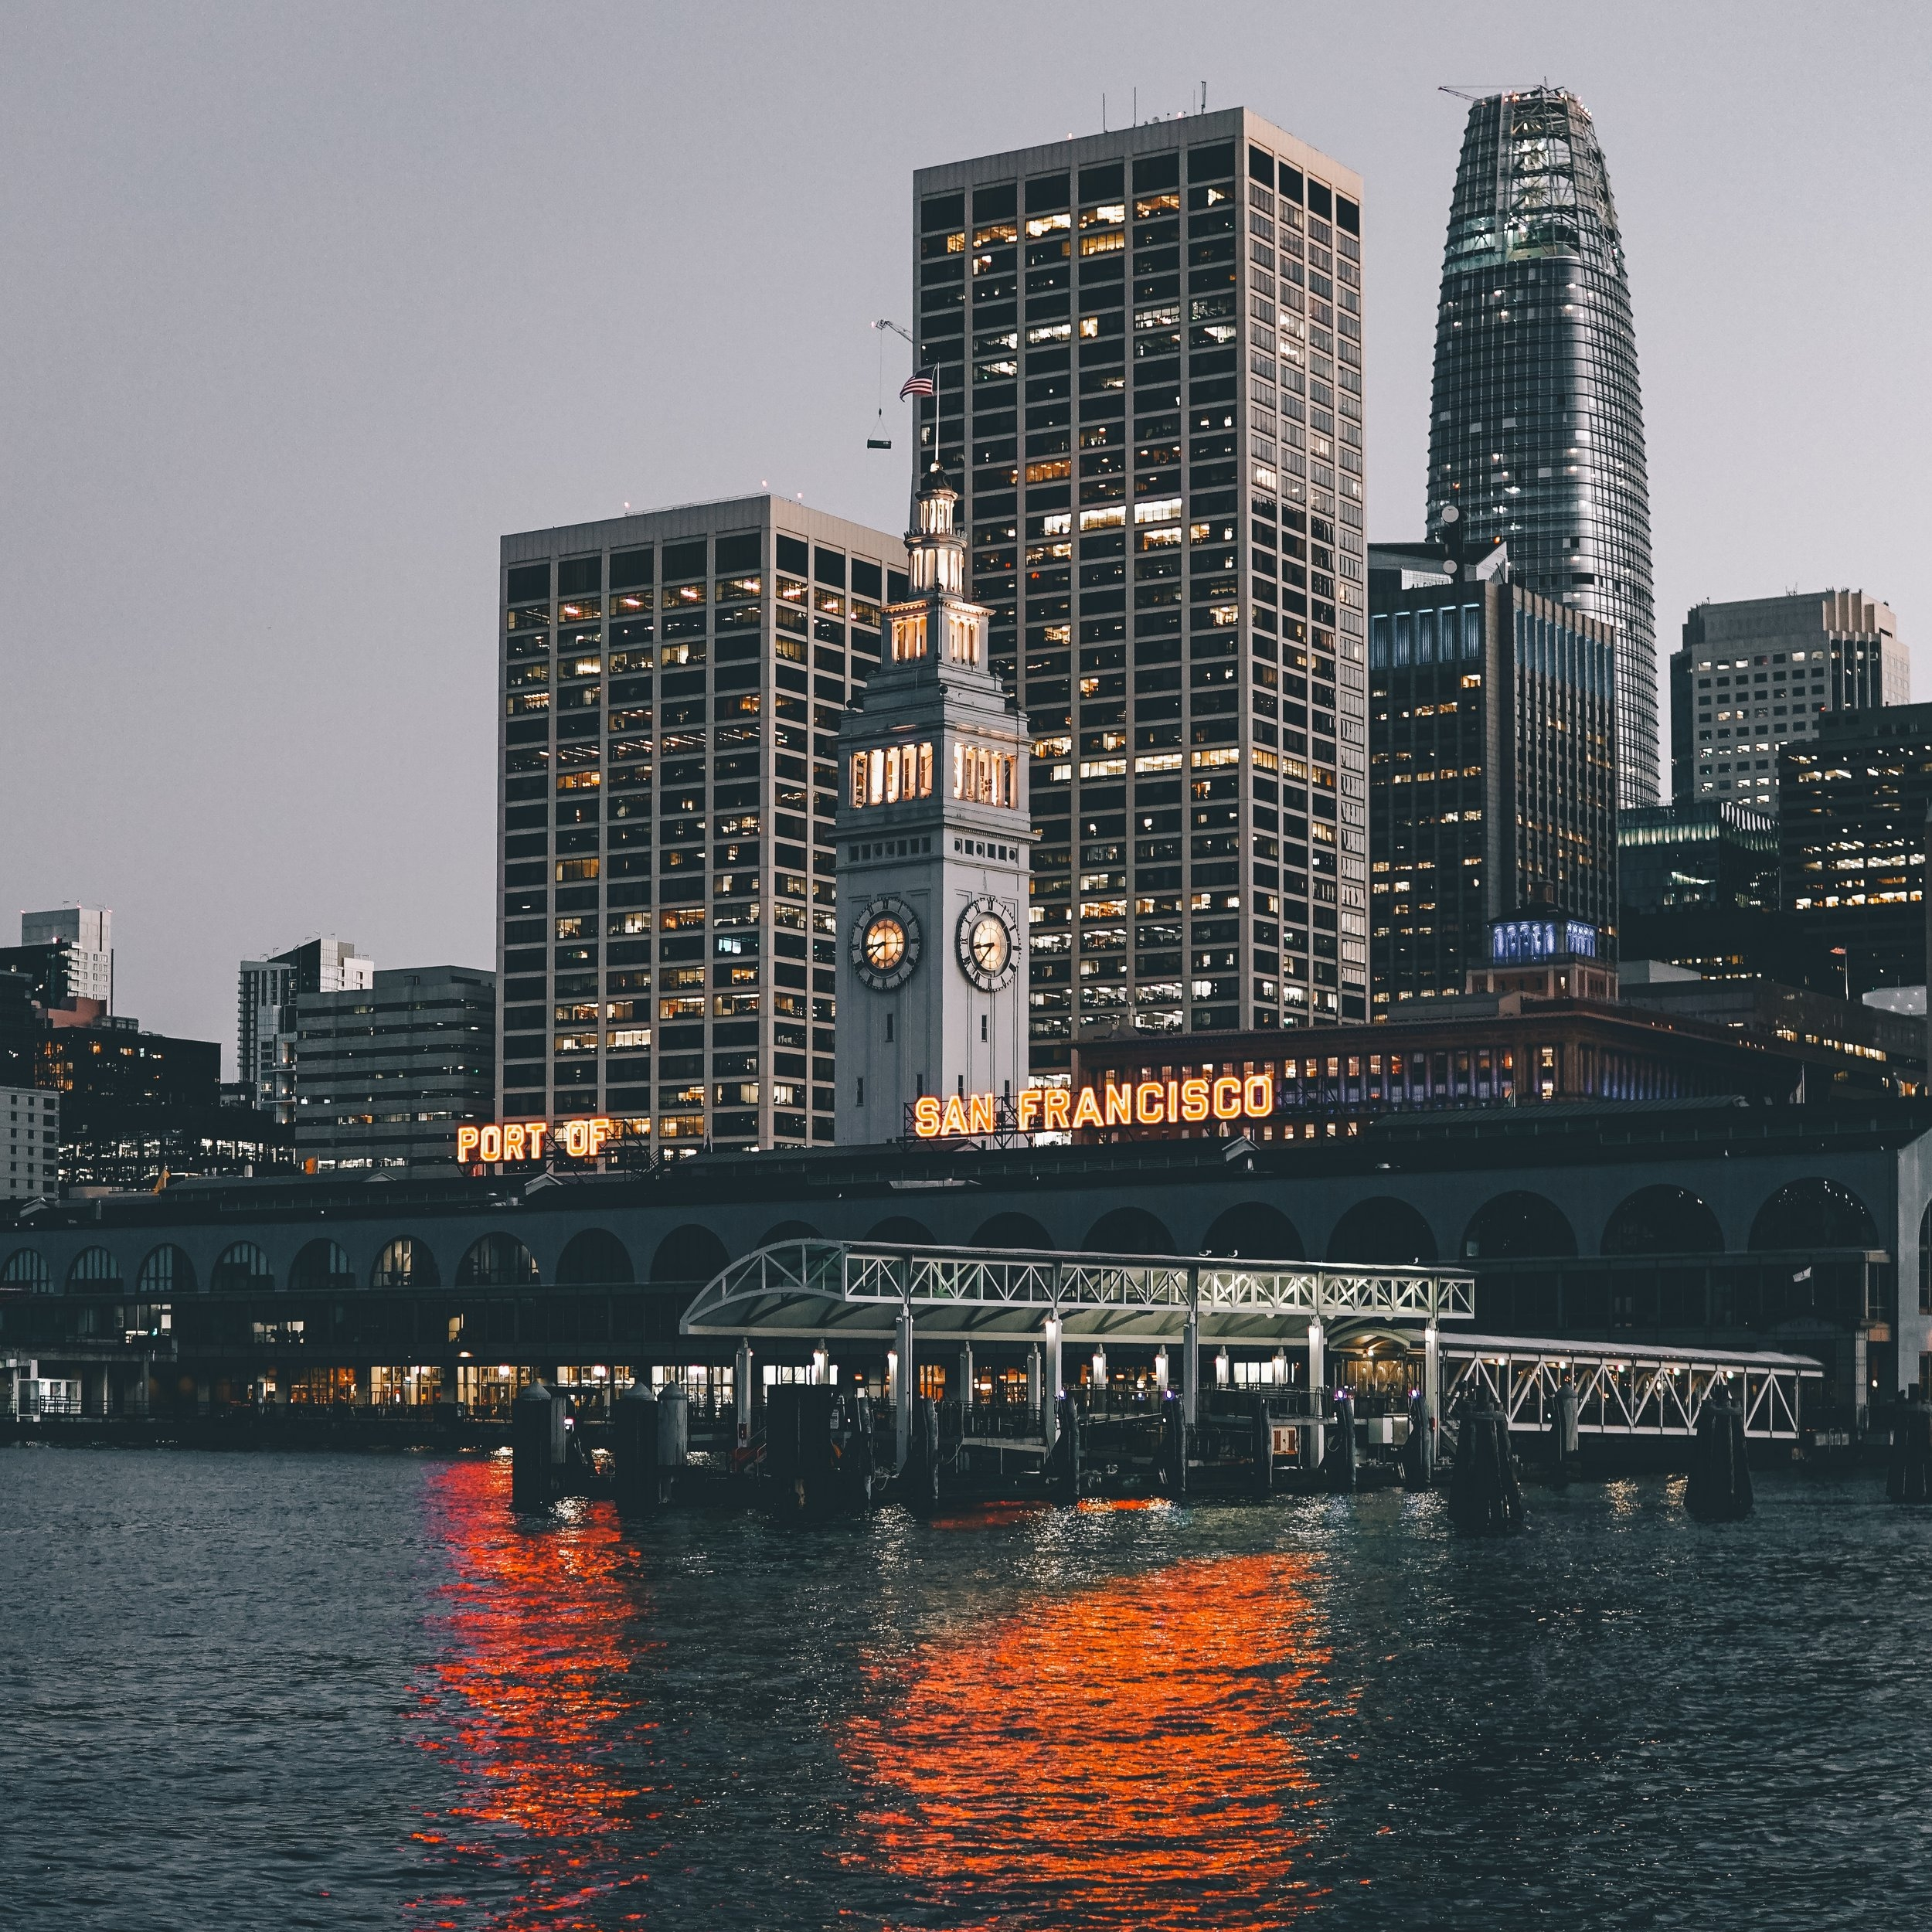 Ferry Building at Pier 1